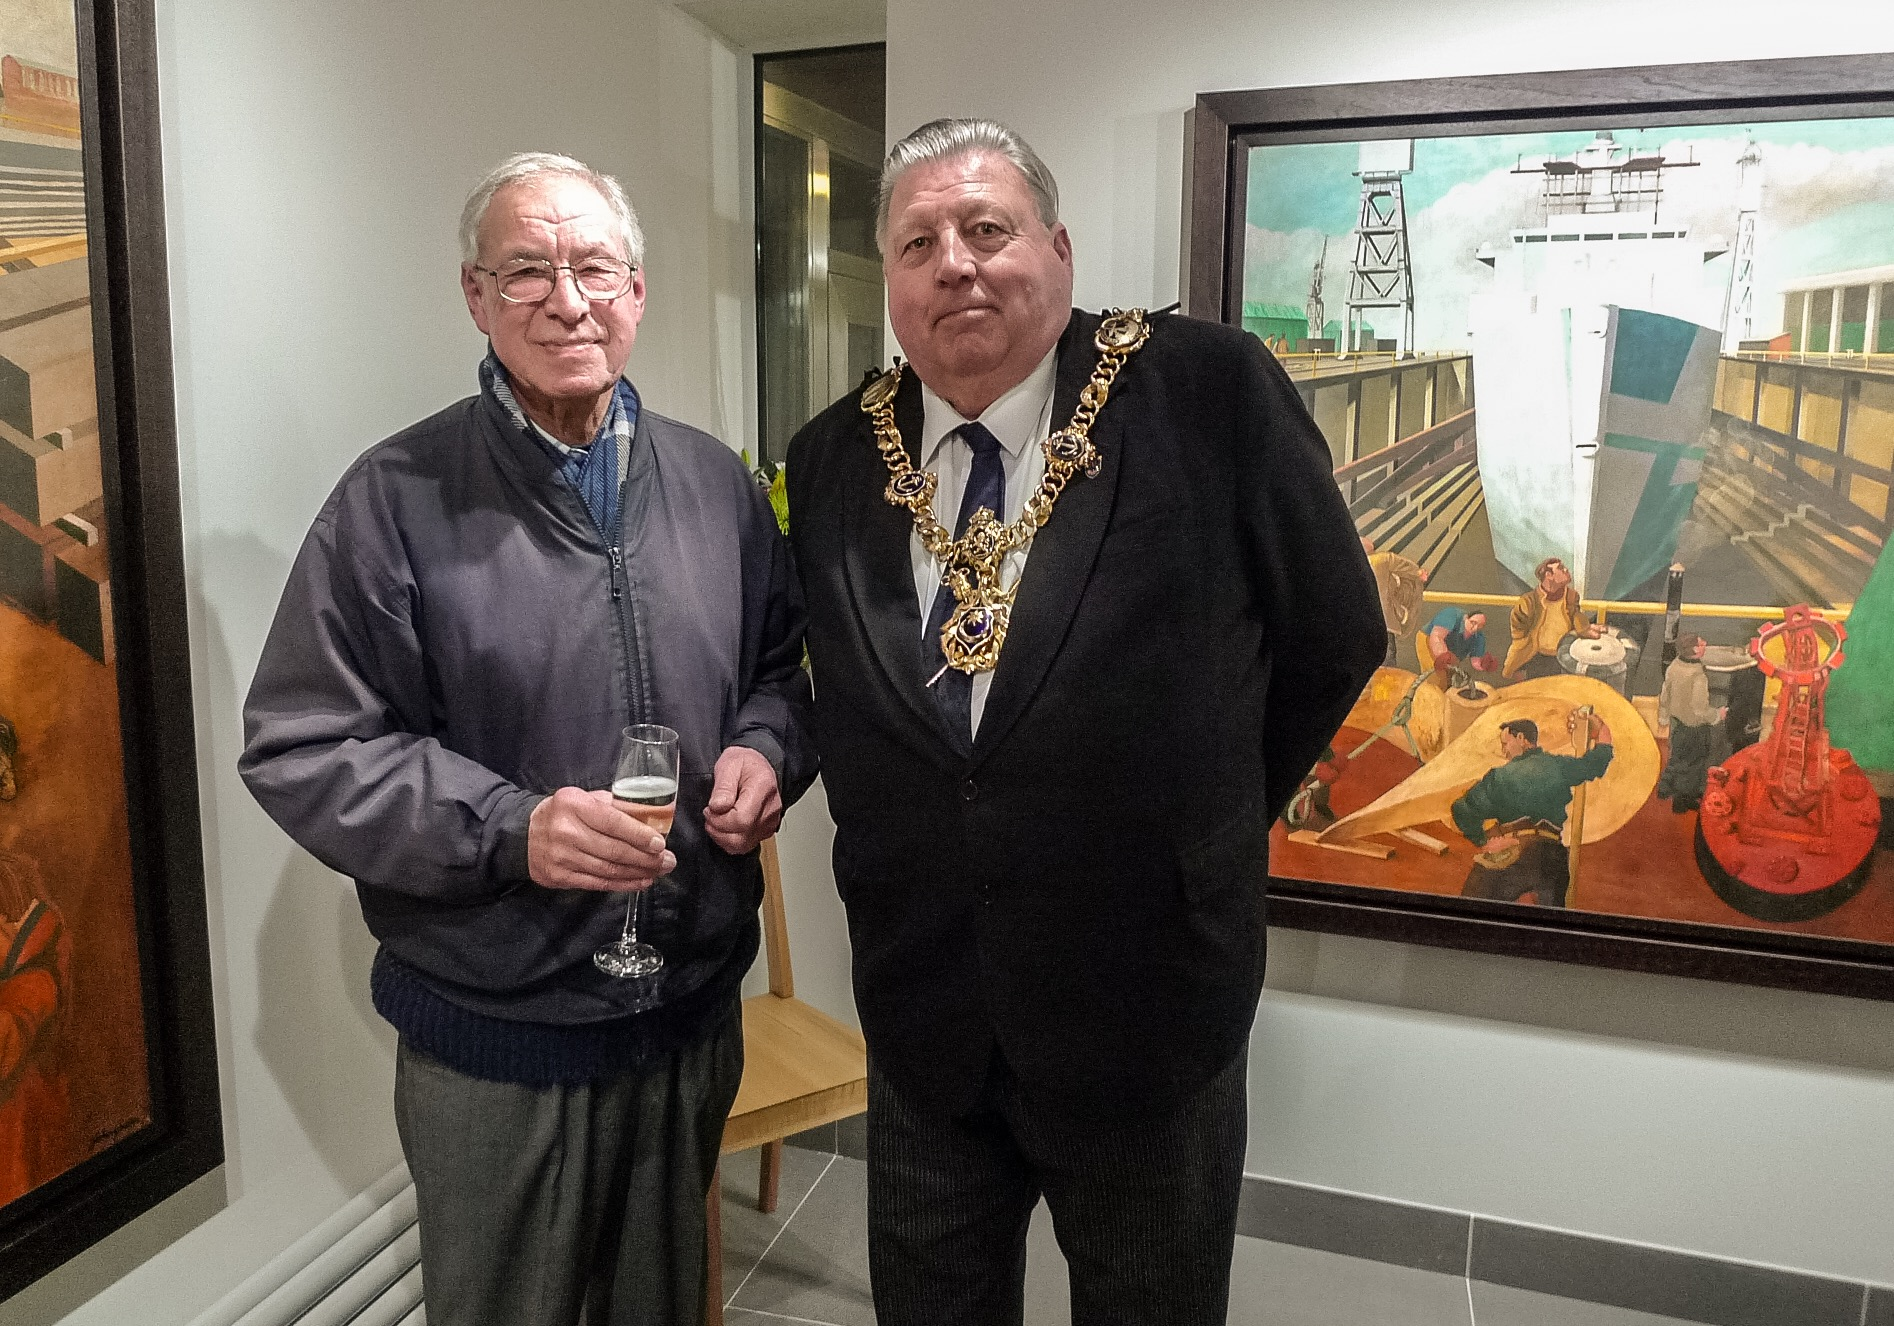 Councillor Frank Jonas with artist John Green at the opening of his show Dockies curated and produced by Rebecca Crow at Jack House Gallery. photo © Anna Burdick